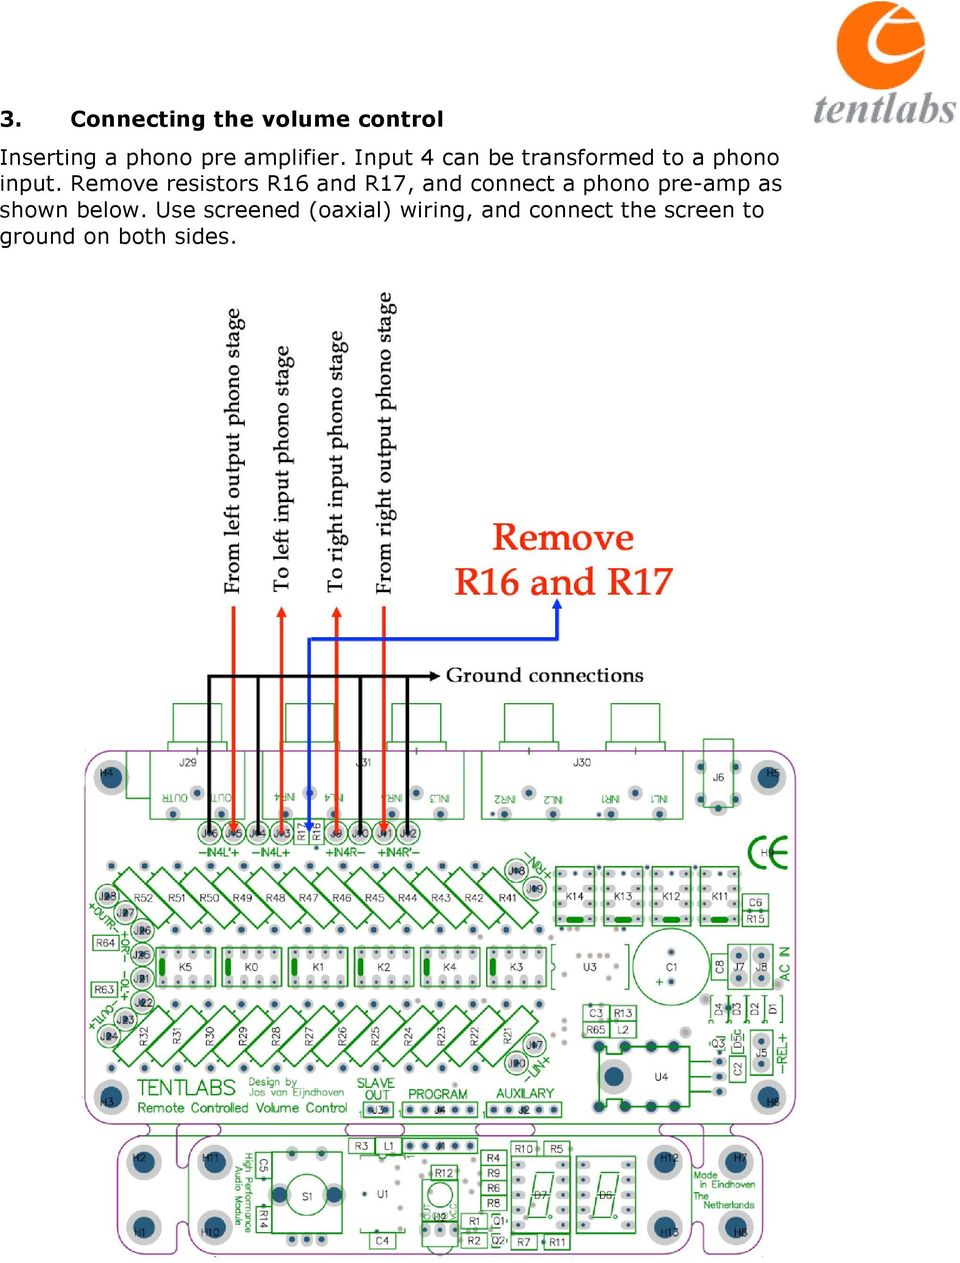 Remove resistors R16 and R17, and connect a phono pre-amp as